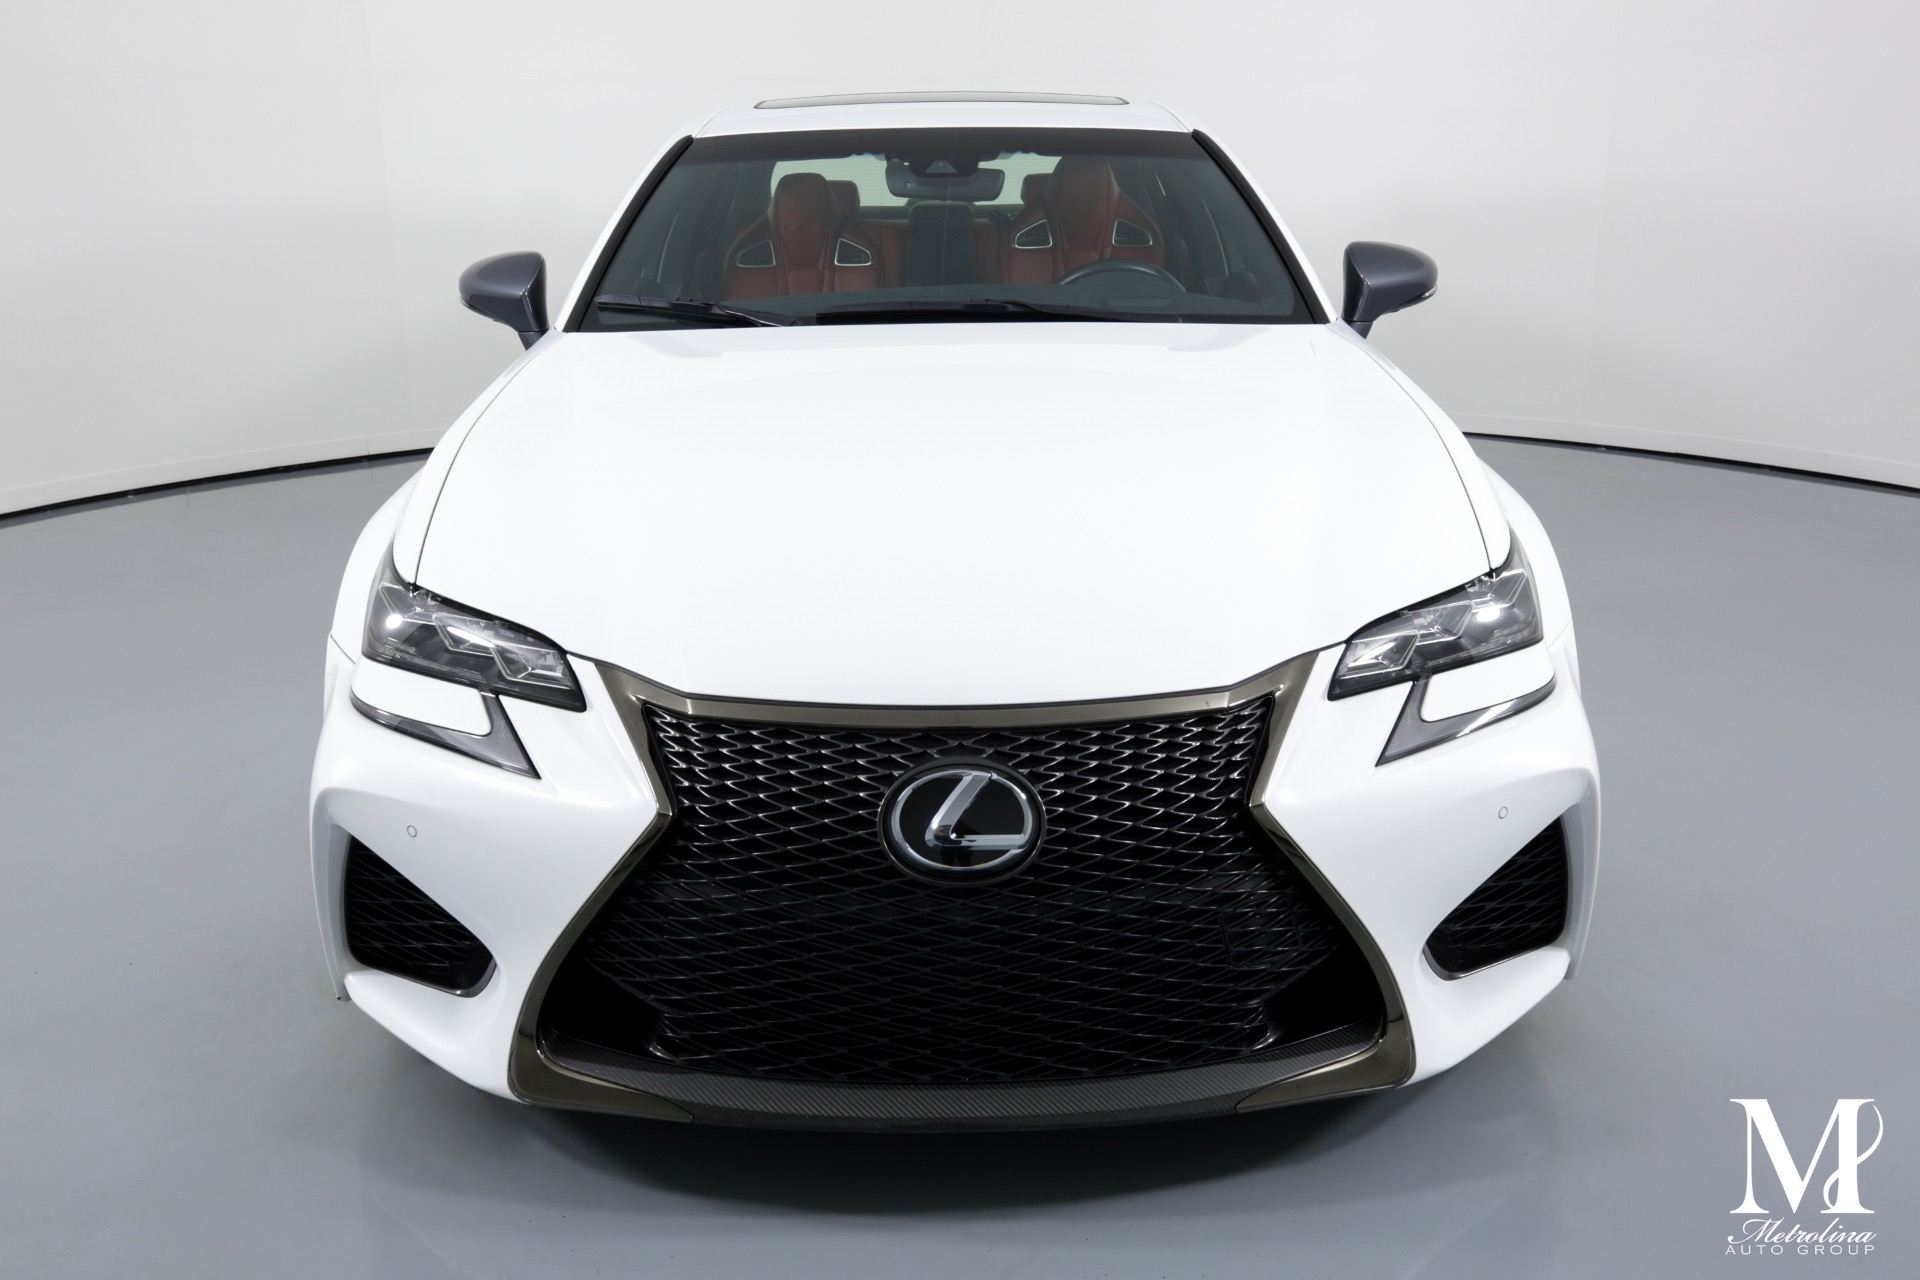 Used 2018 Lexus GS F for sale $61,996 at Metrolina Auto Group in Charlotte NC 28217 - 3